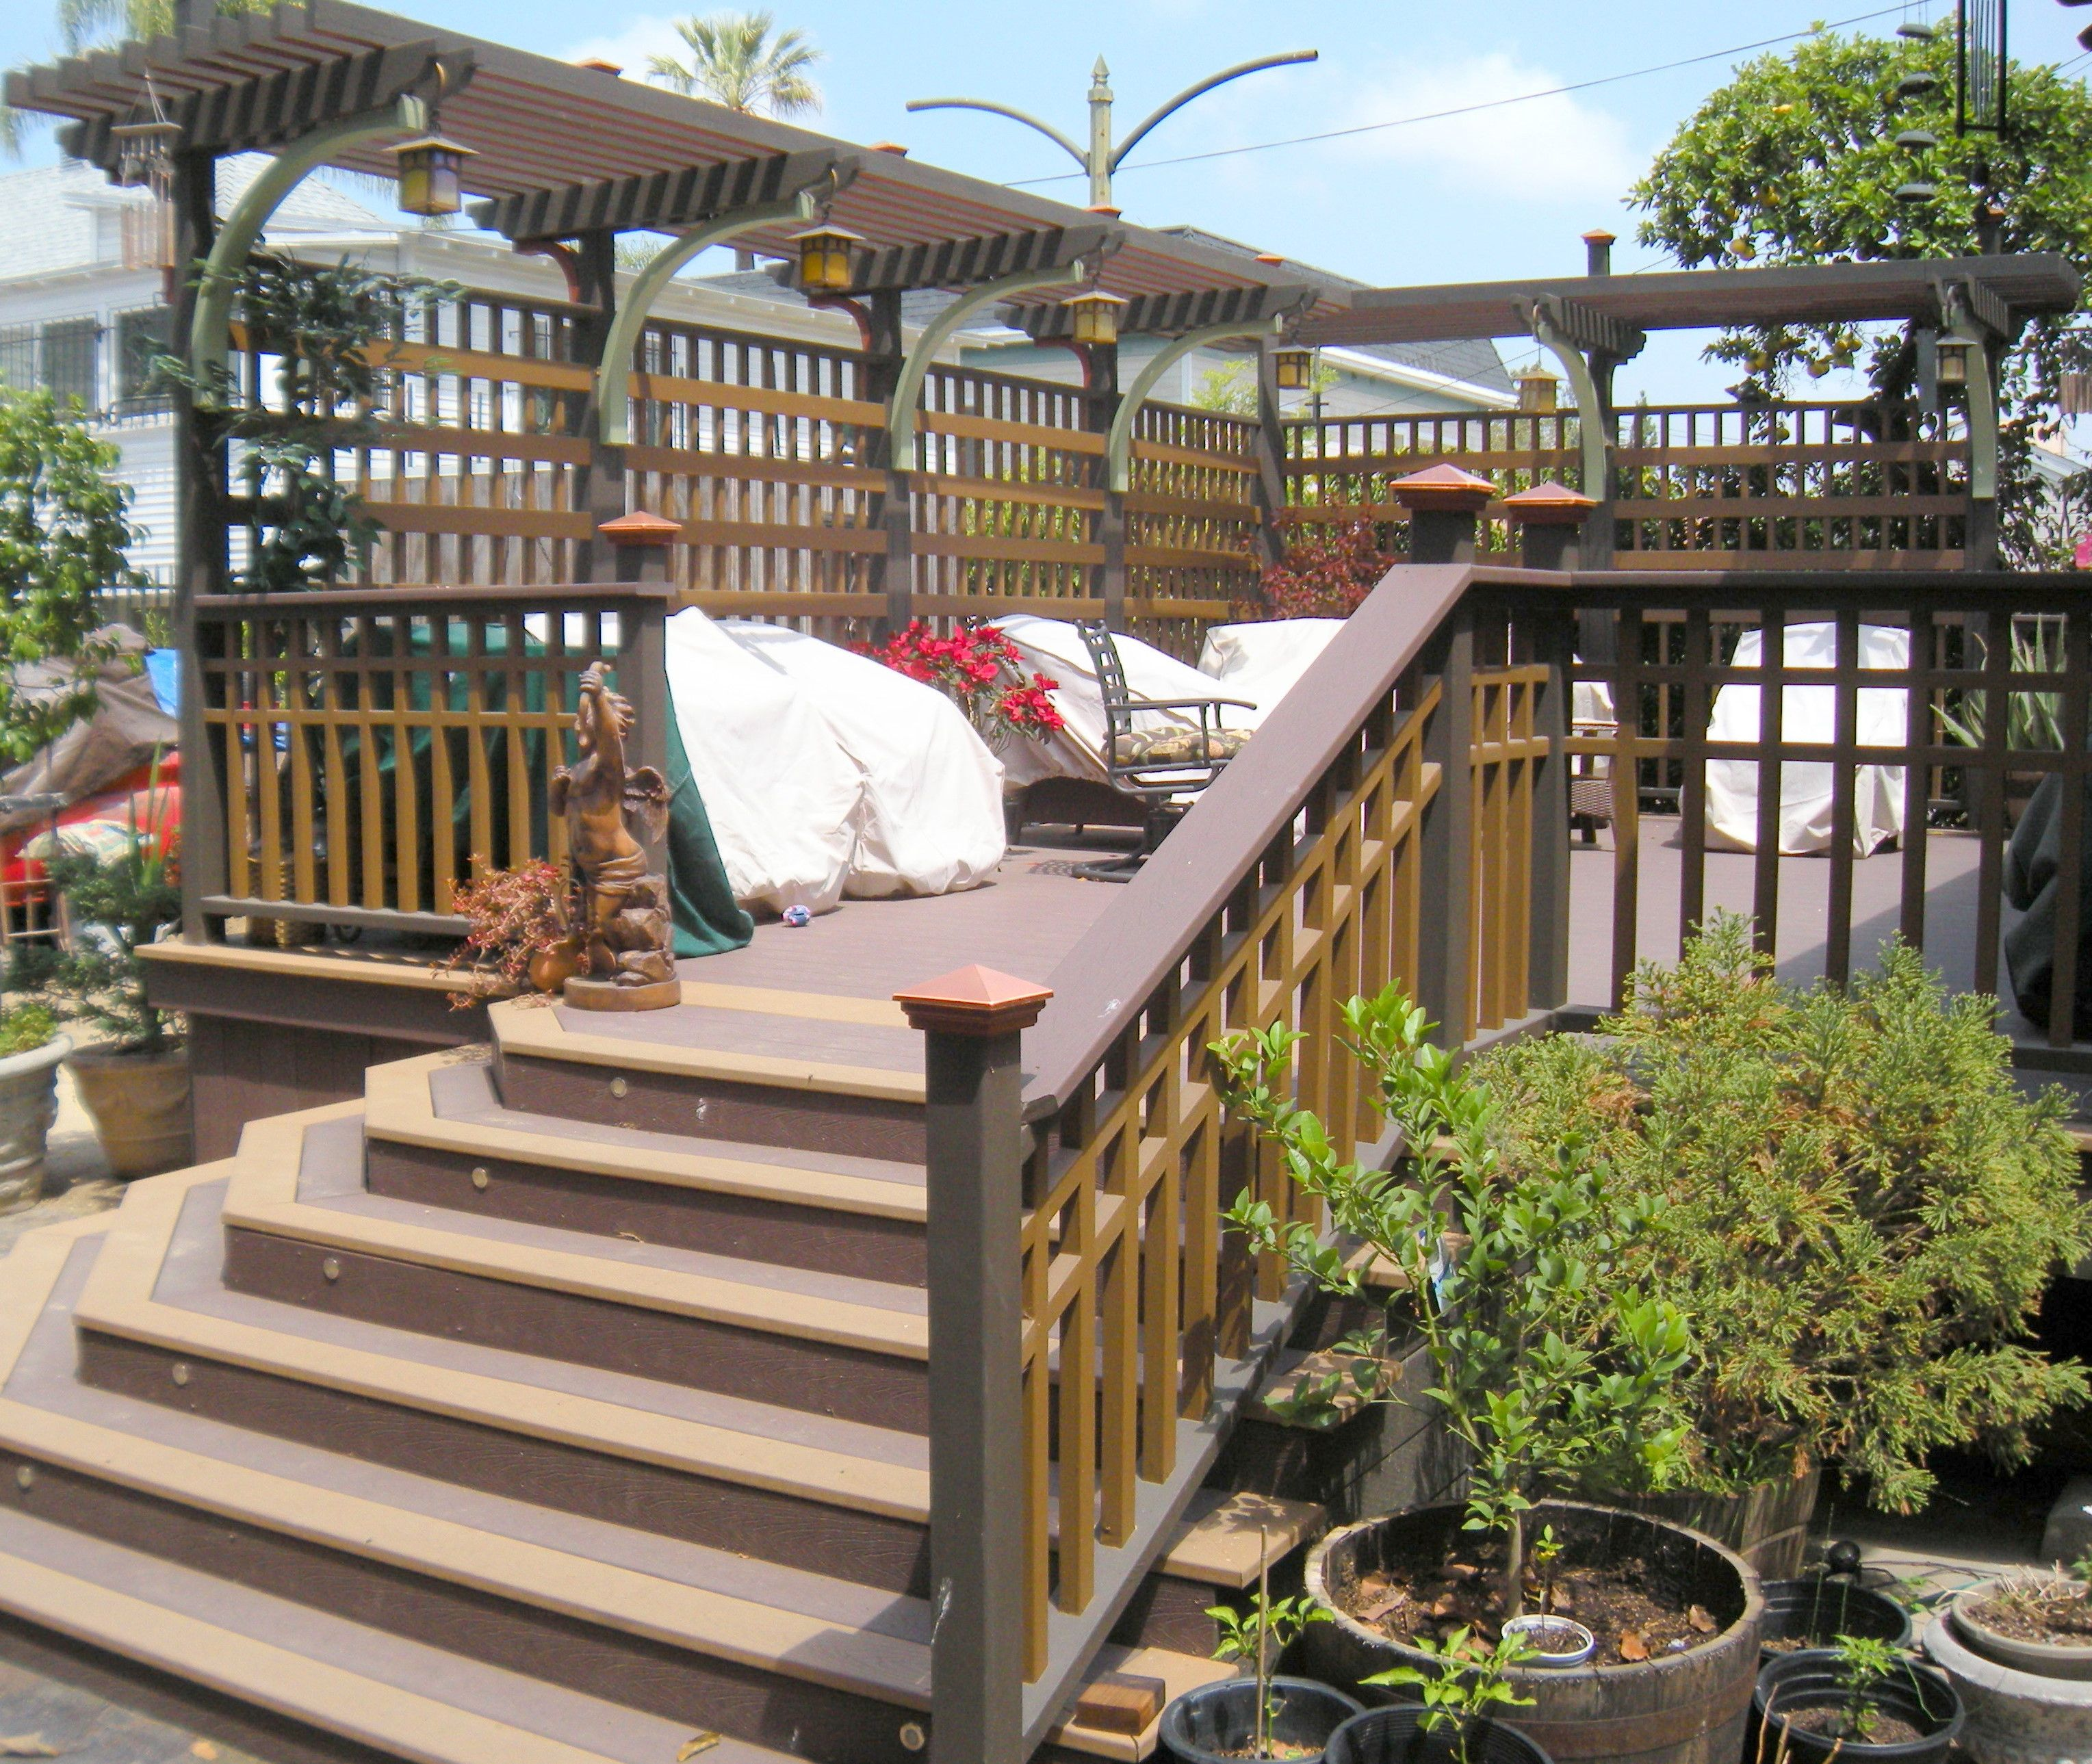 Custom Deck Design, Patio And Gazebo Contractor In Redondo Beach